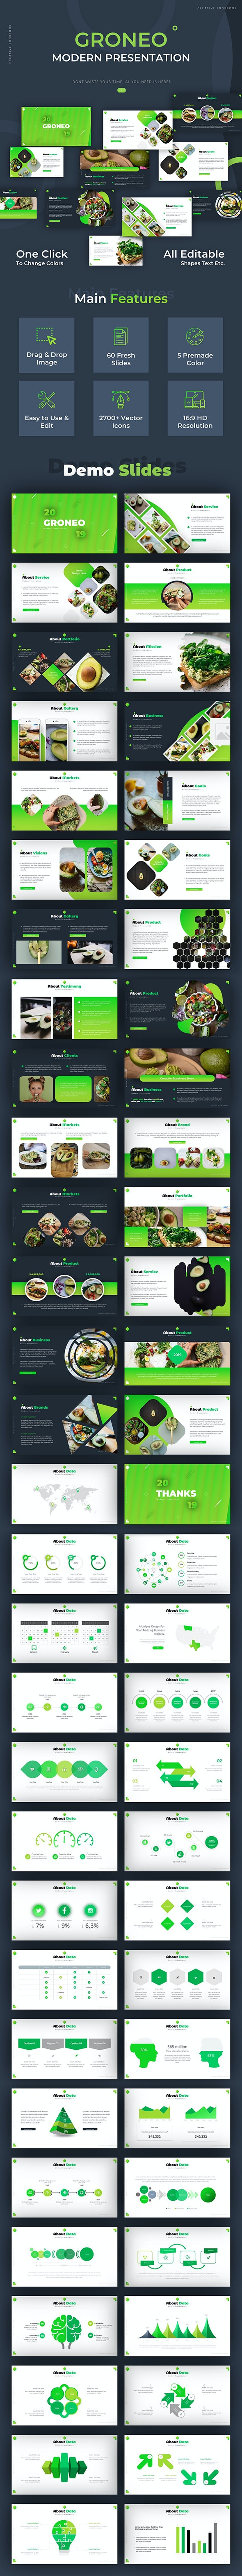 Groneo Modern Powerpoint - Business PowerPoint Templates